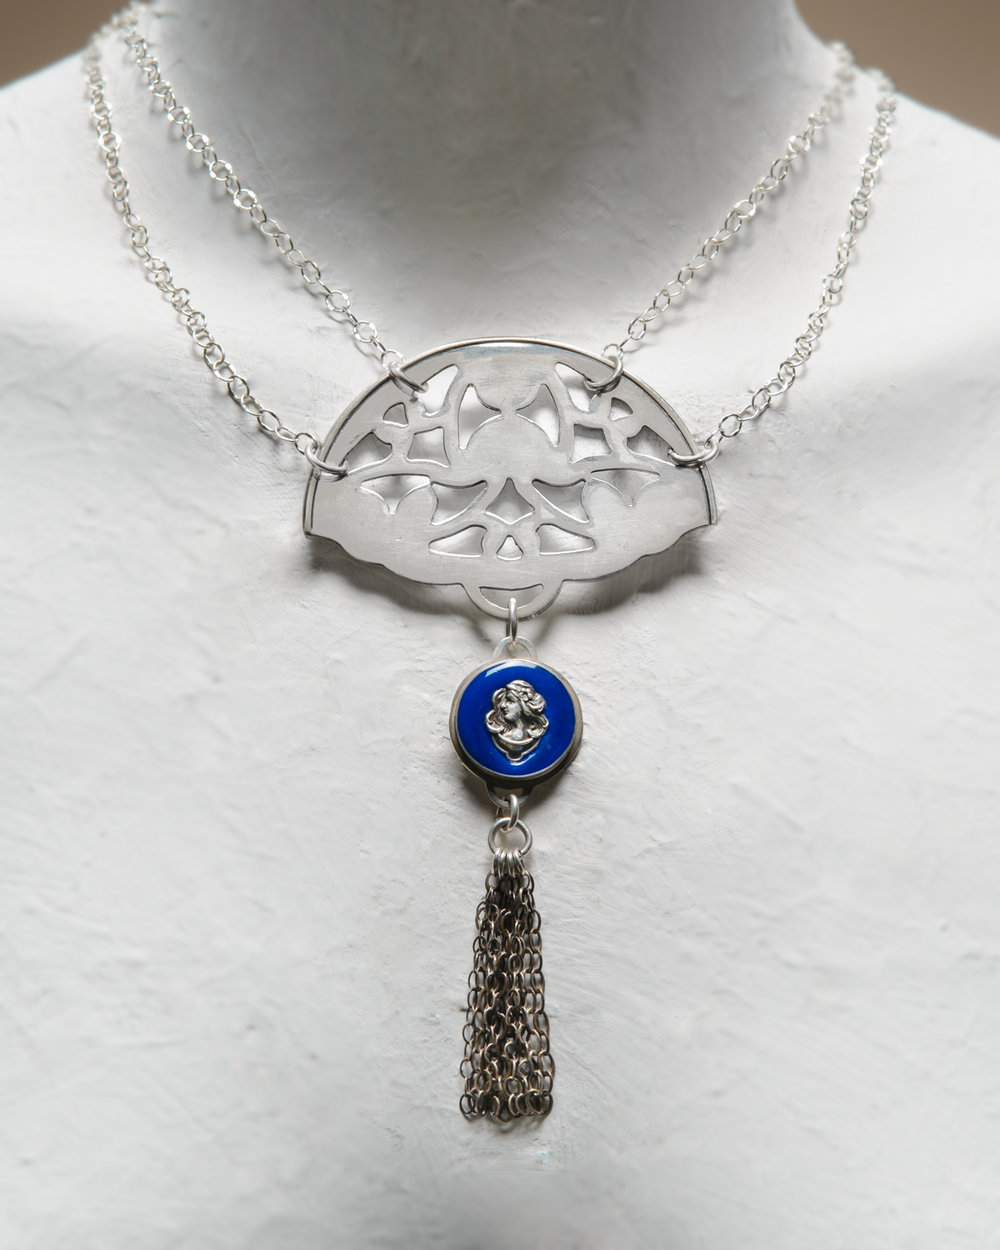 Necklace Blue Belle.jpg